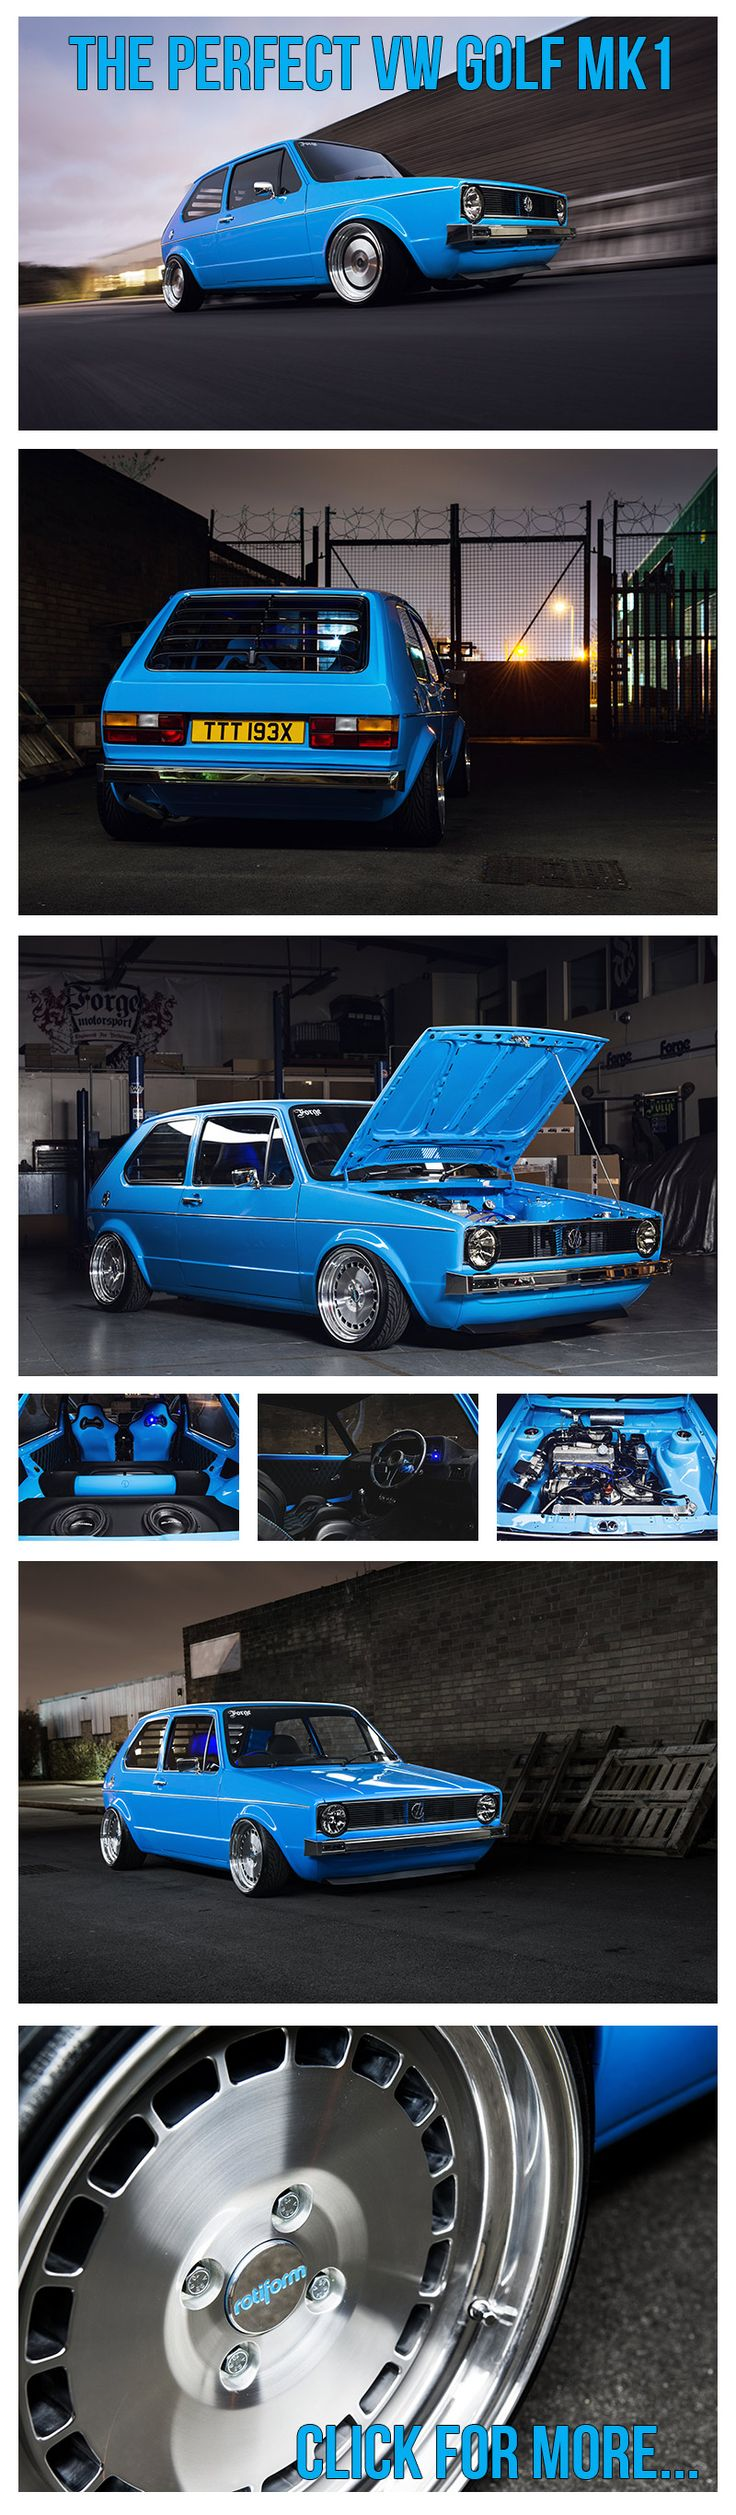 VW Golf GTI mk1 Rotiform, Forge Motorsport, Pipercross, Airlift performance, powerflex, scorpion